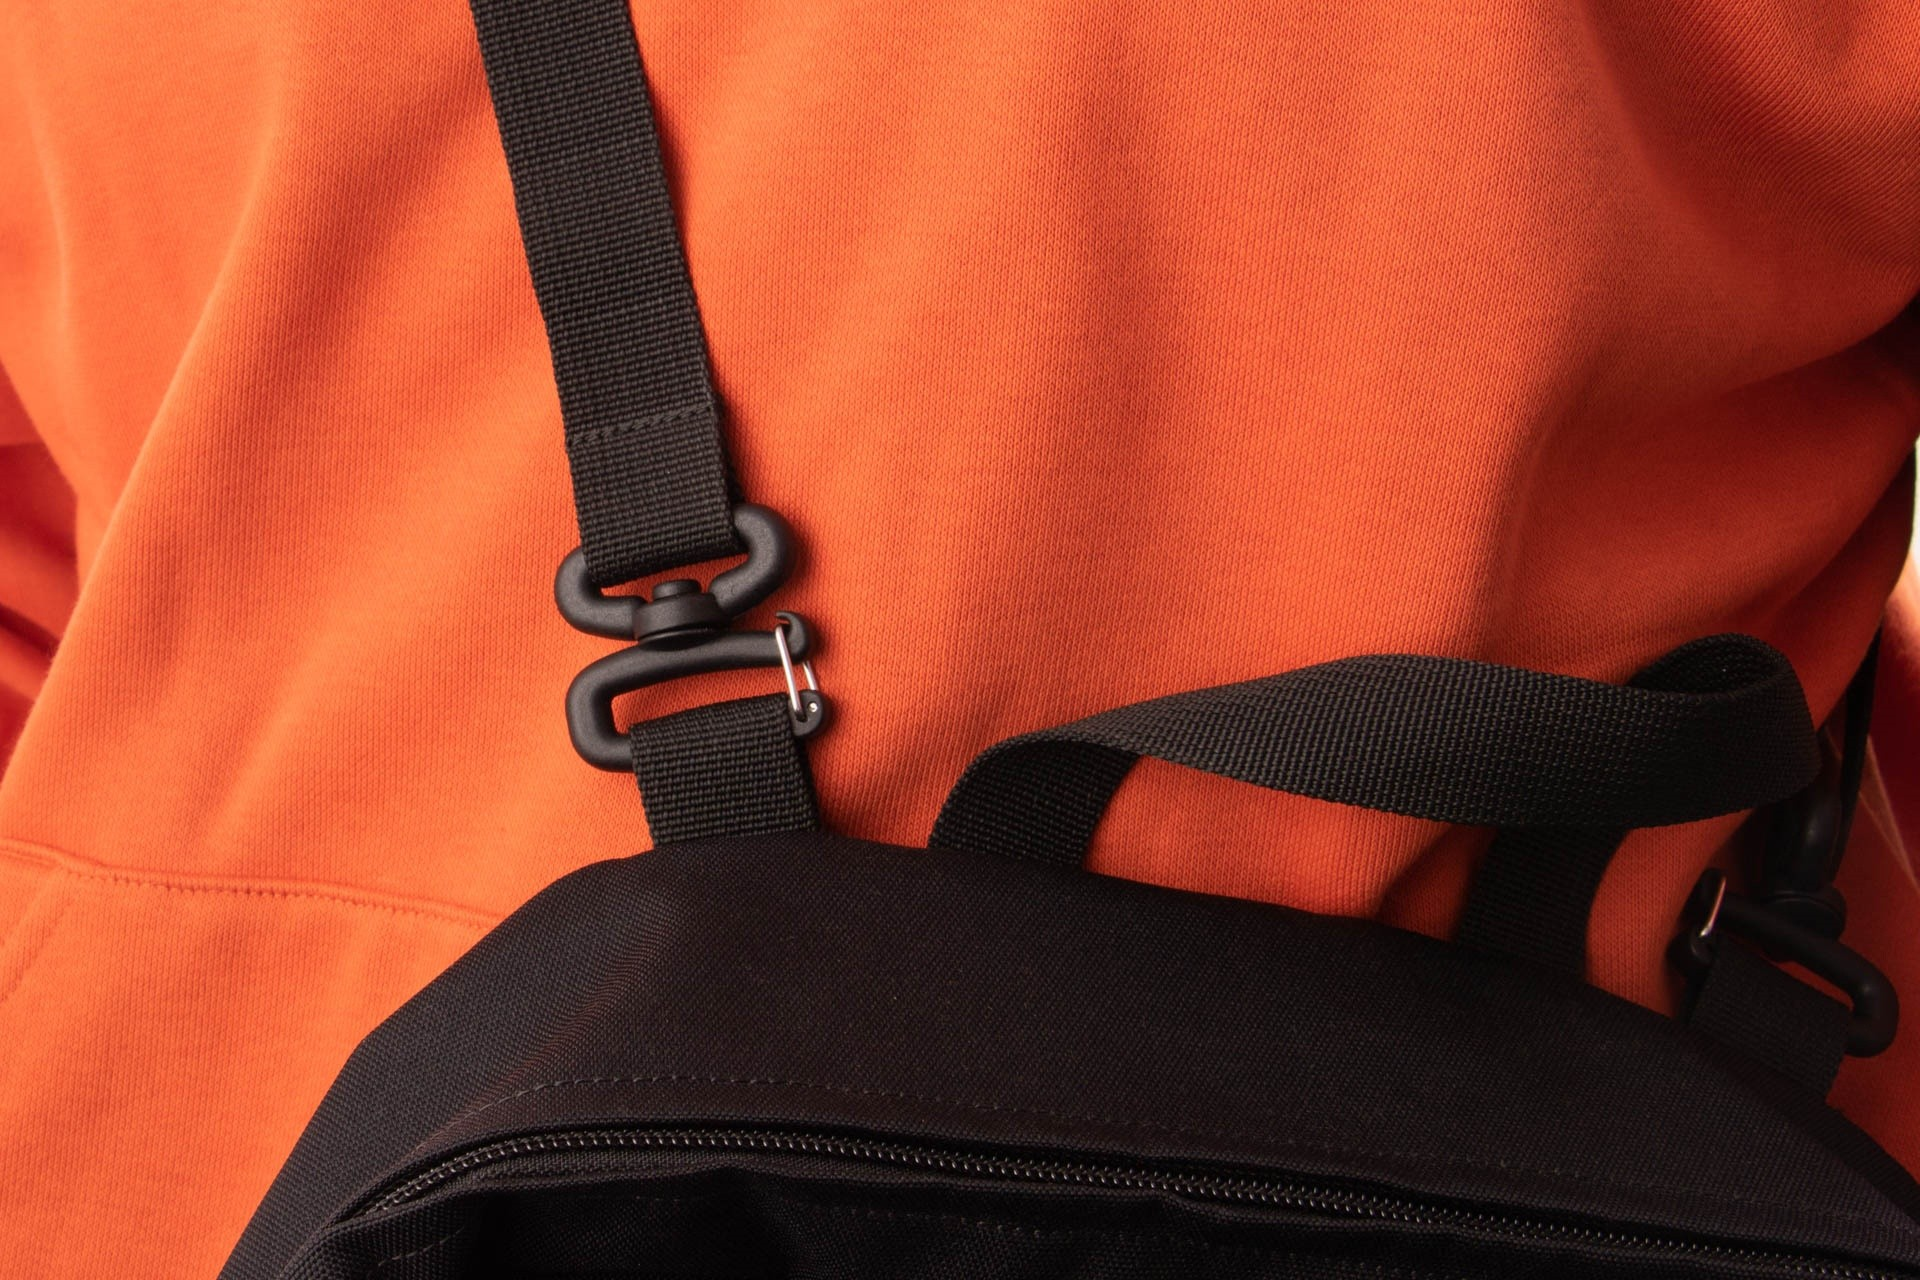 cd1dff53ab6 Afbeelding van Carhartt WIP Payton Shoulder Bag I025414 Schoudertas Black /  White